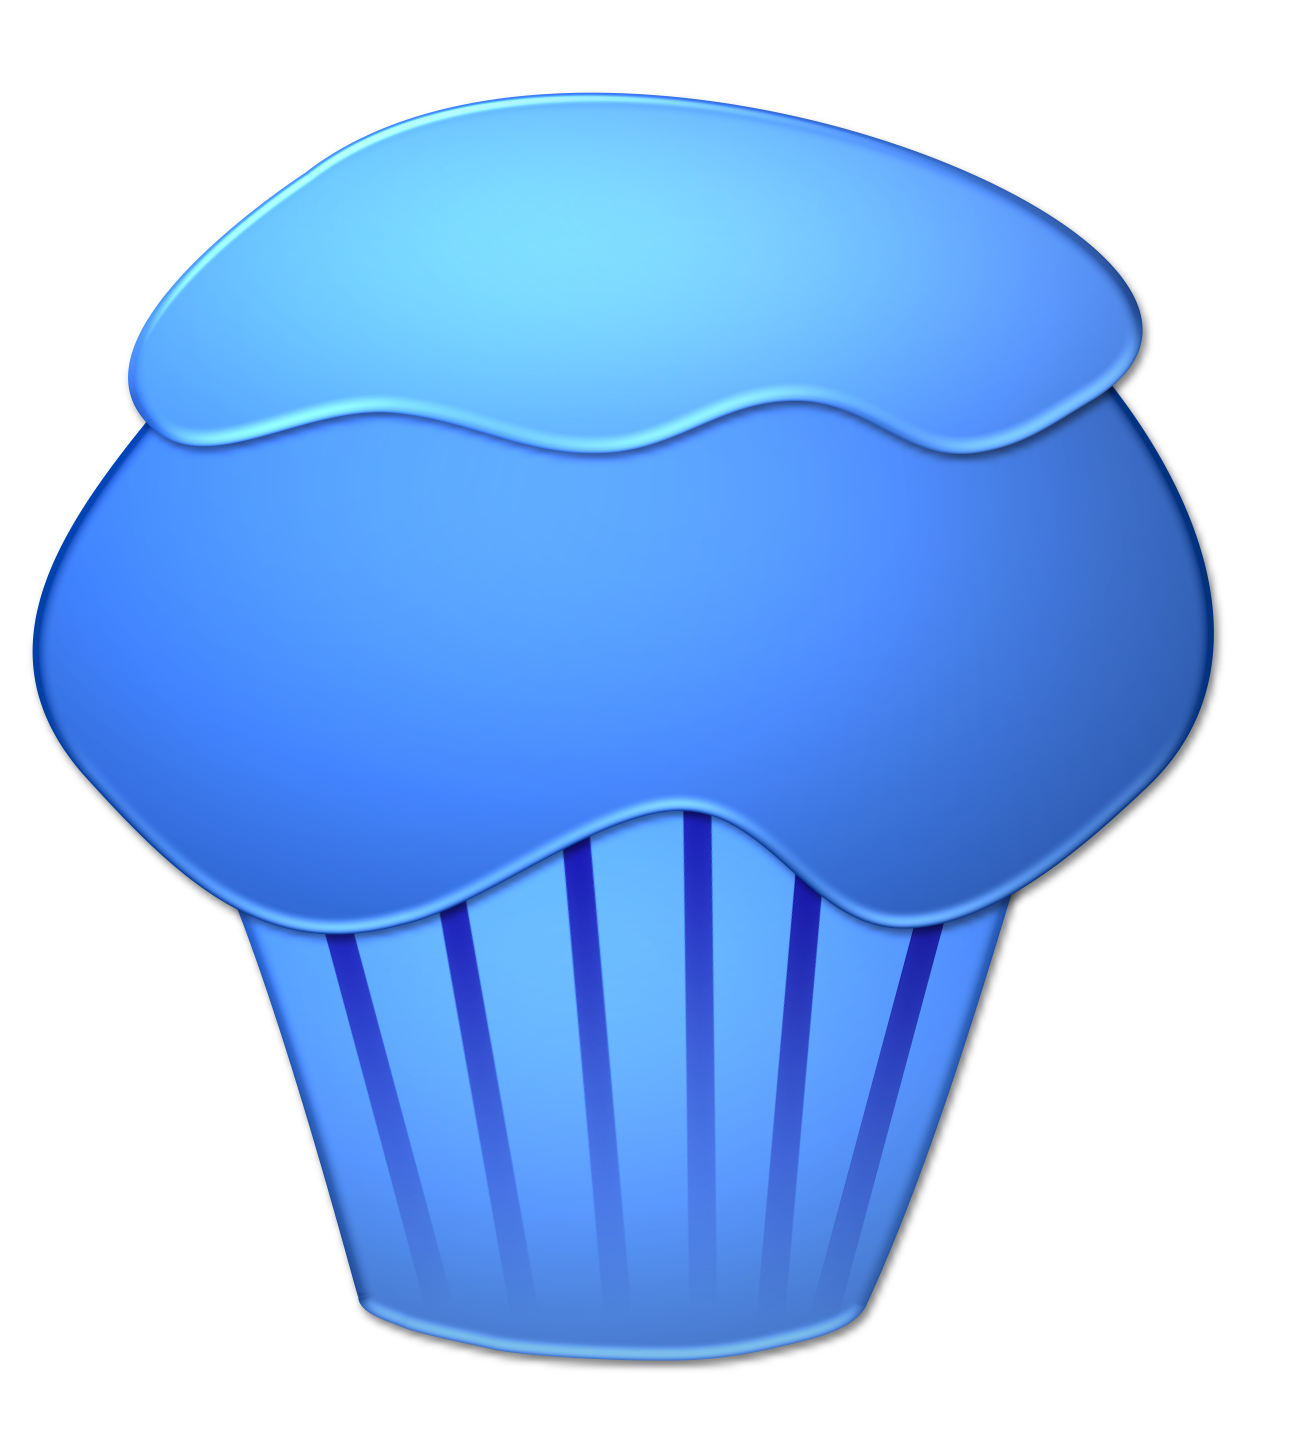 Blueberry Muffin clipart transparent Blueberry Clipart Cupcake Clipart Cupcake